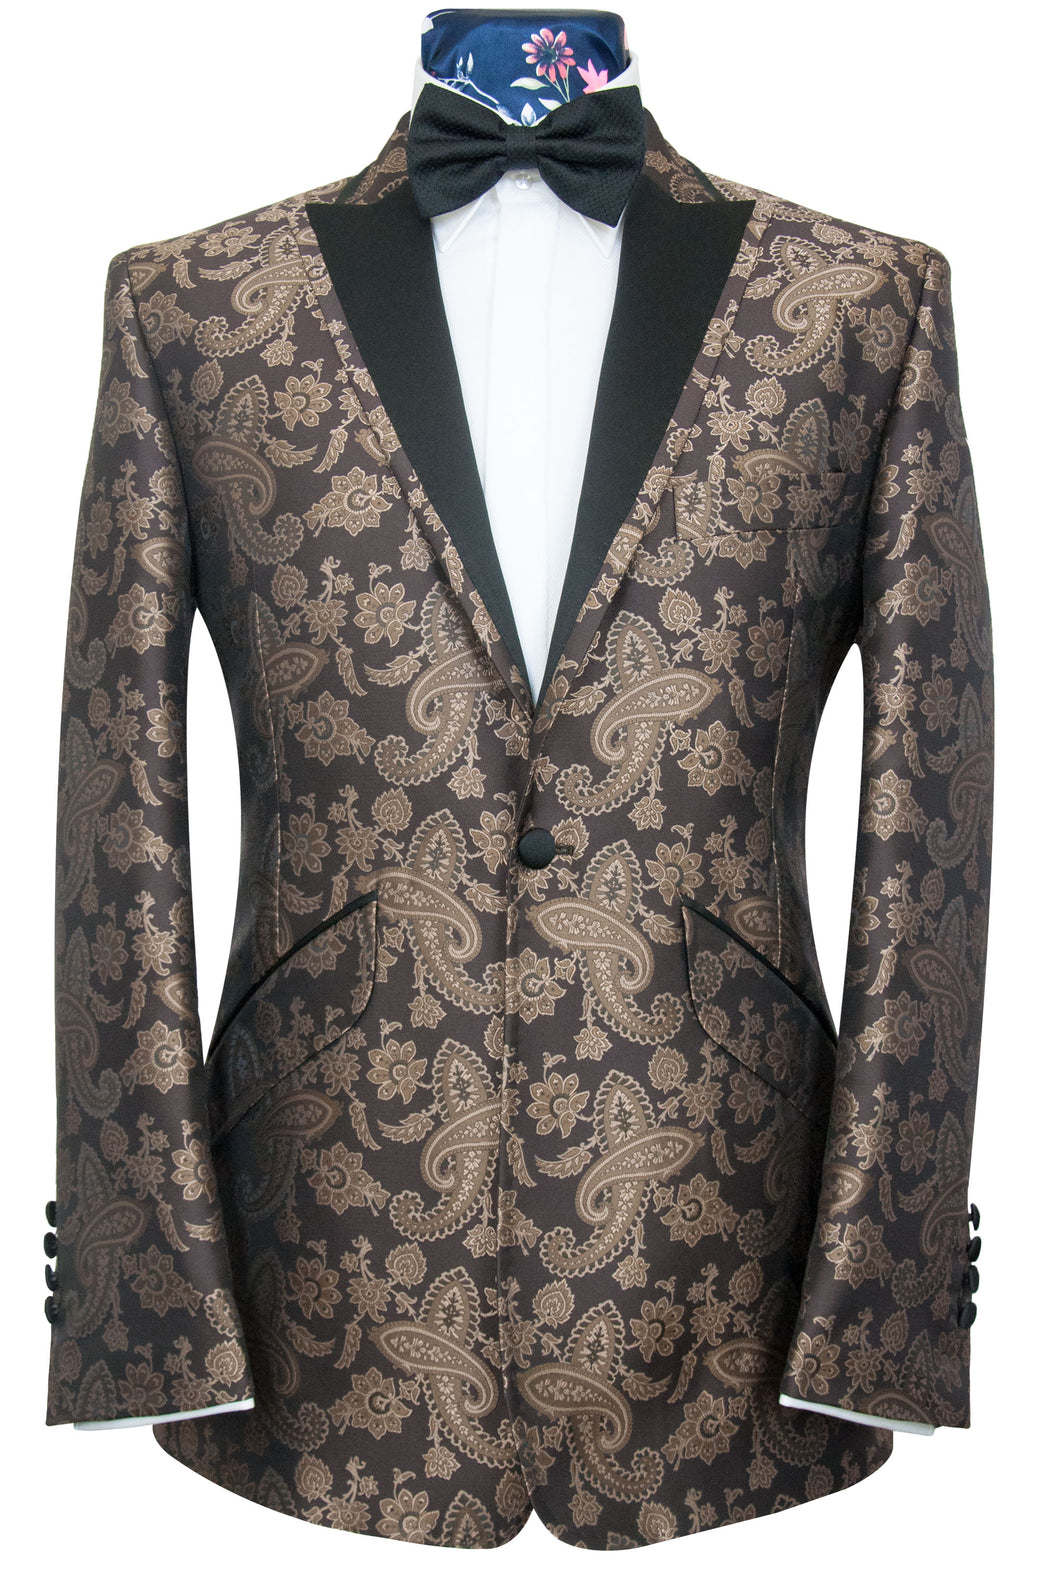 William Hunt Savile Row | The Lewis Dinner Jacket in Chocolate with Muted Bronze Paisley Pattern